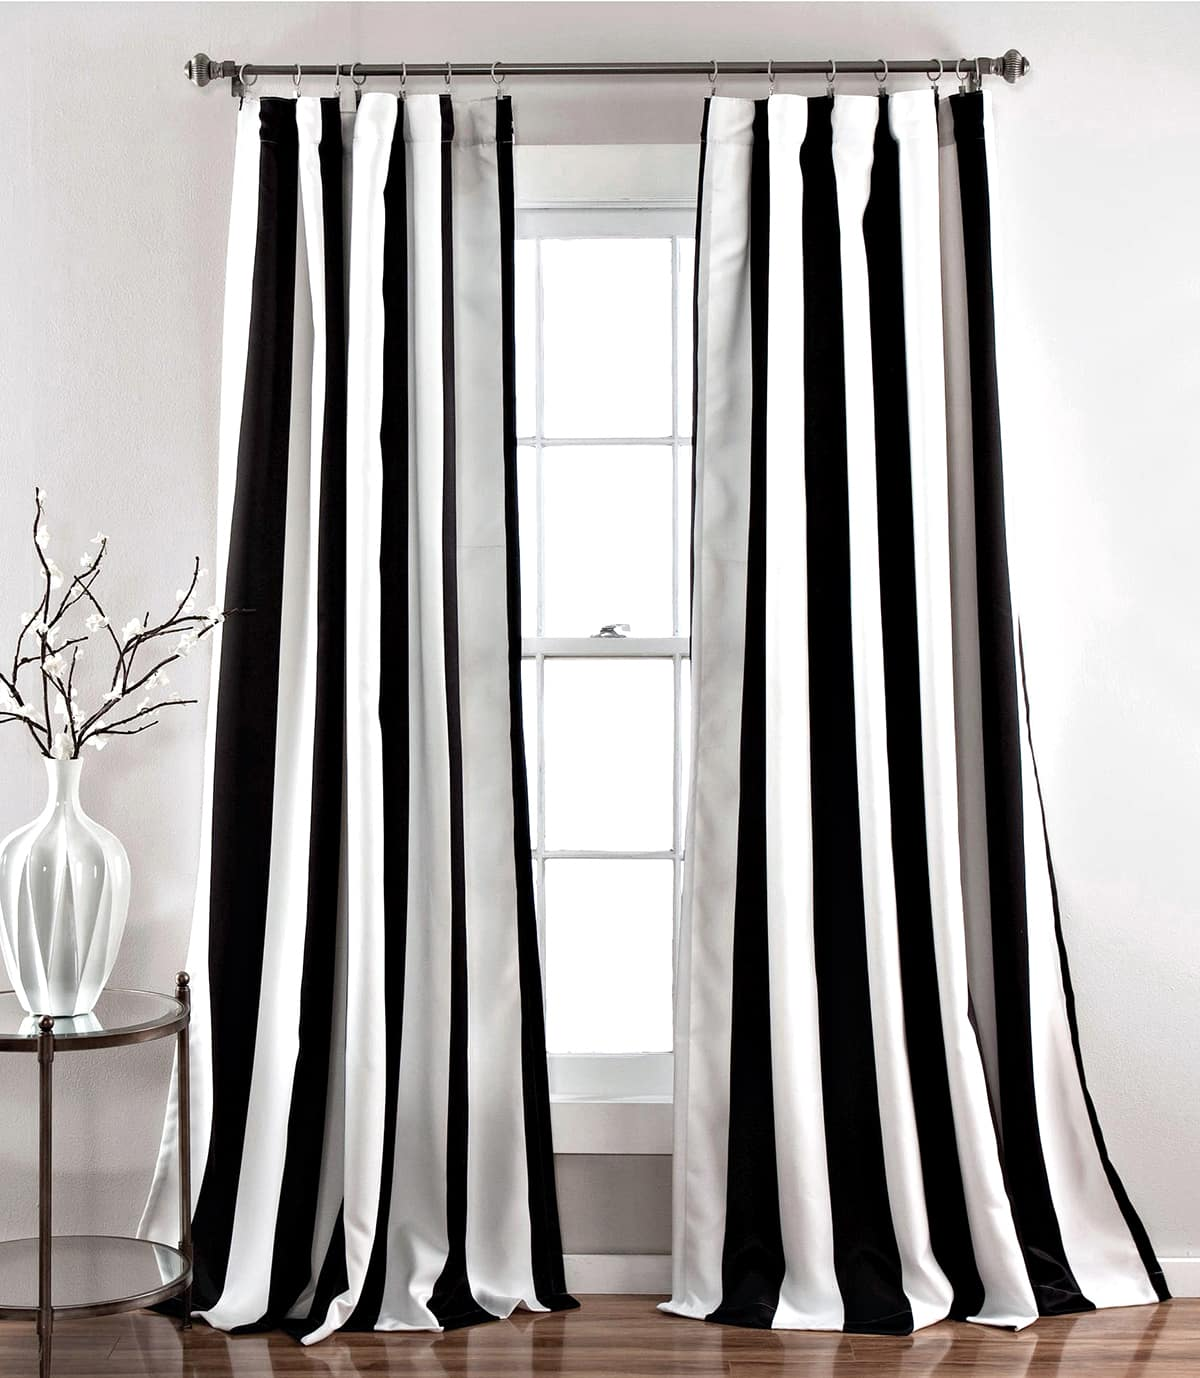 Black and white curtains - My favorite black and white curtains